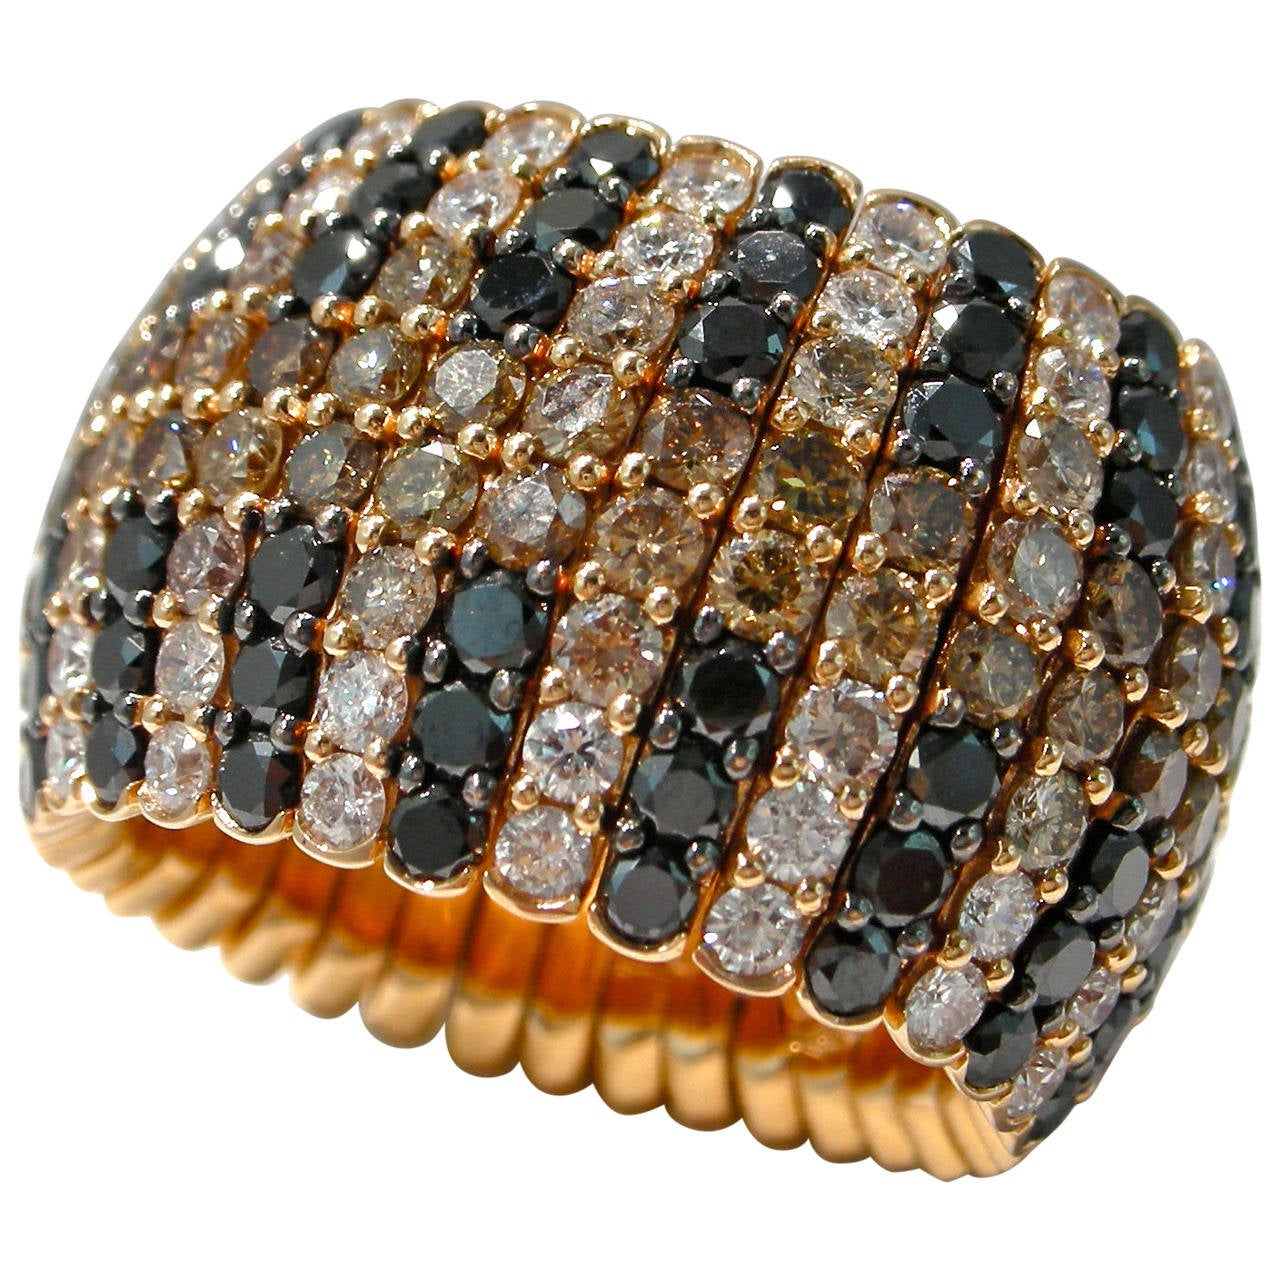 Jona Black Brown and White Diamond 18 Karat Rose Gold Flexible Band Ring